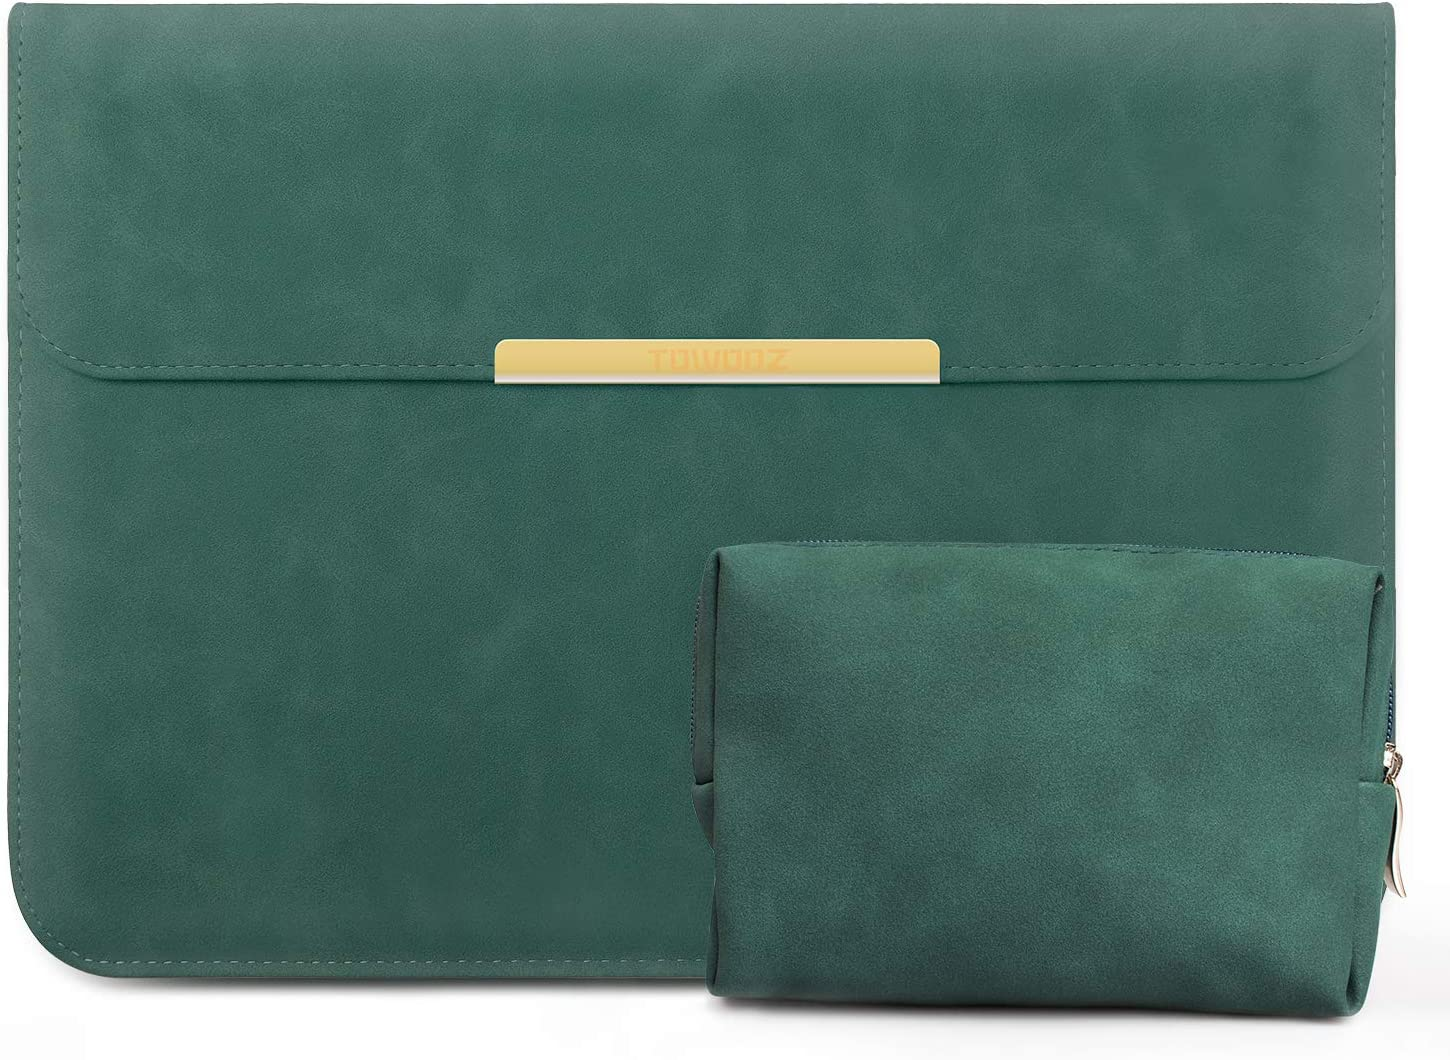 TOWOOZ Laptop Sleeve Case with Accessory Pouch for 13.3-inch MacBook Air/Pro/iPad Pro 12.9 / Dell XPS 13/ Surface Pro X, Faux Suede Leather Case (13-13.3inch, Green)